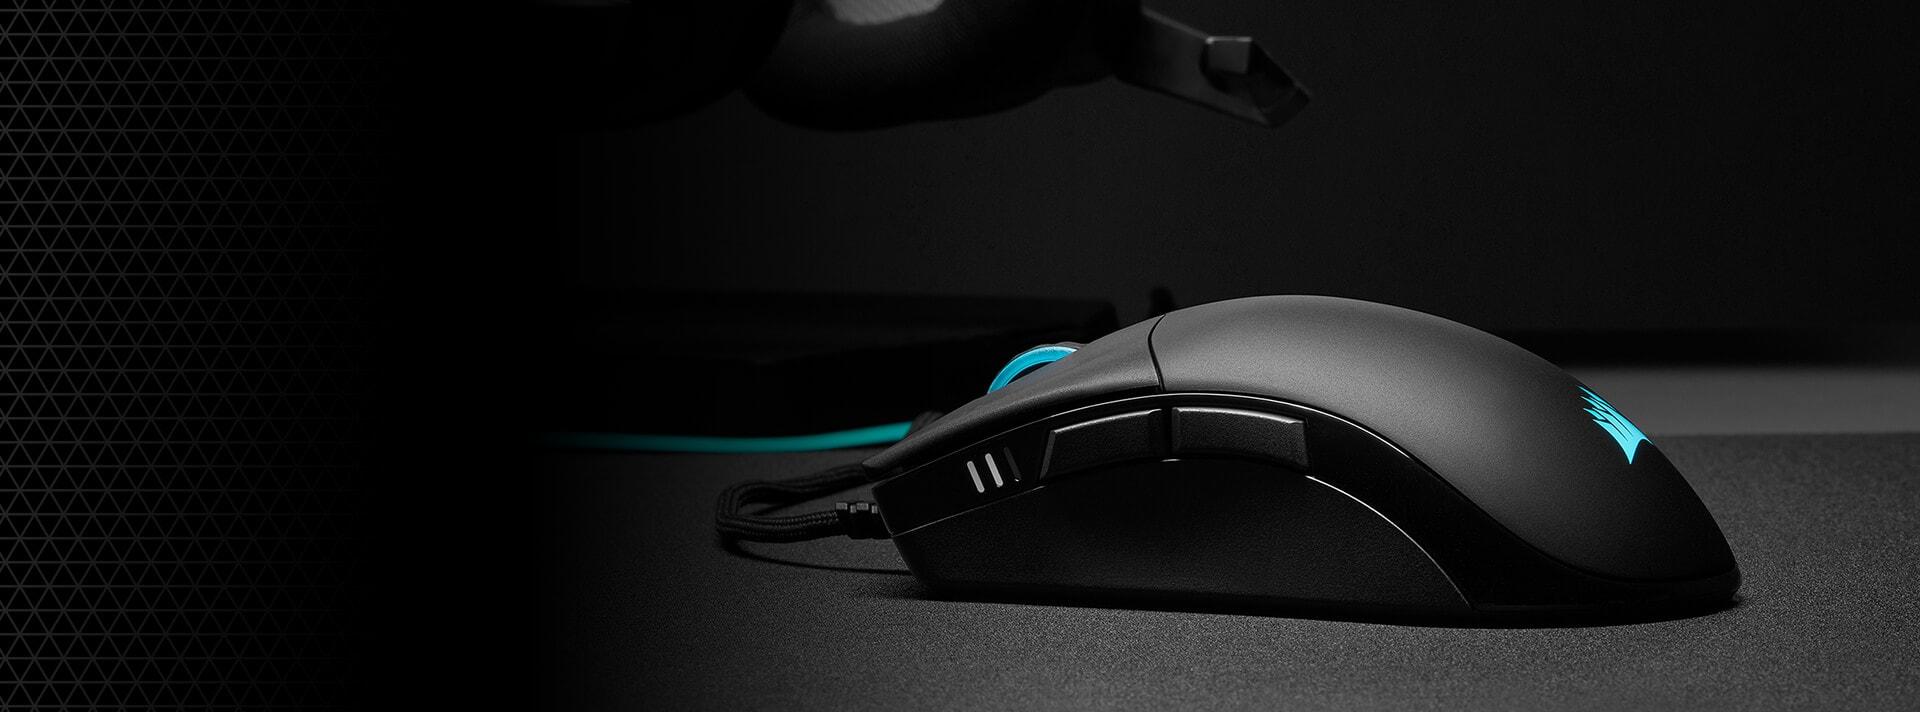 CORSAIR SABRE RGB PRO CHAMPION SERIES Opitcal Gaming Mouse